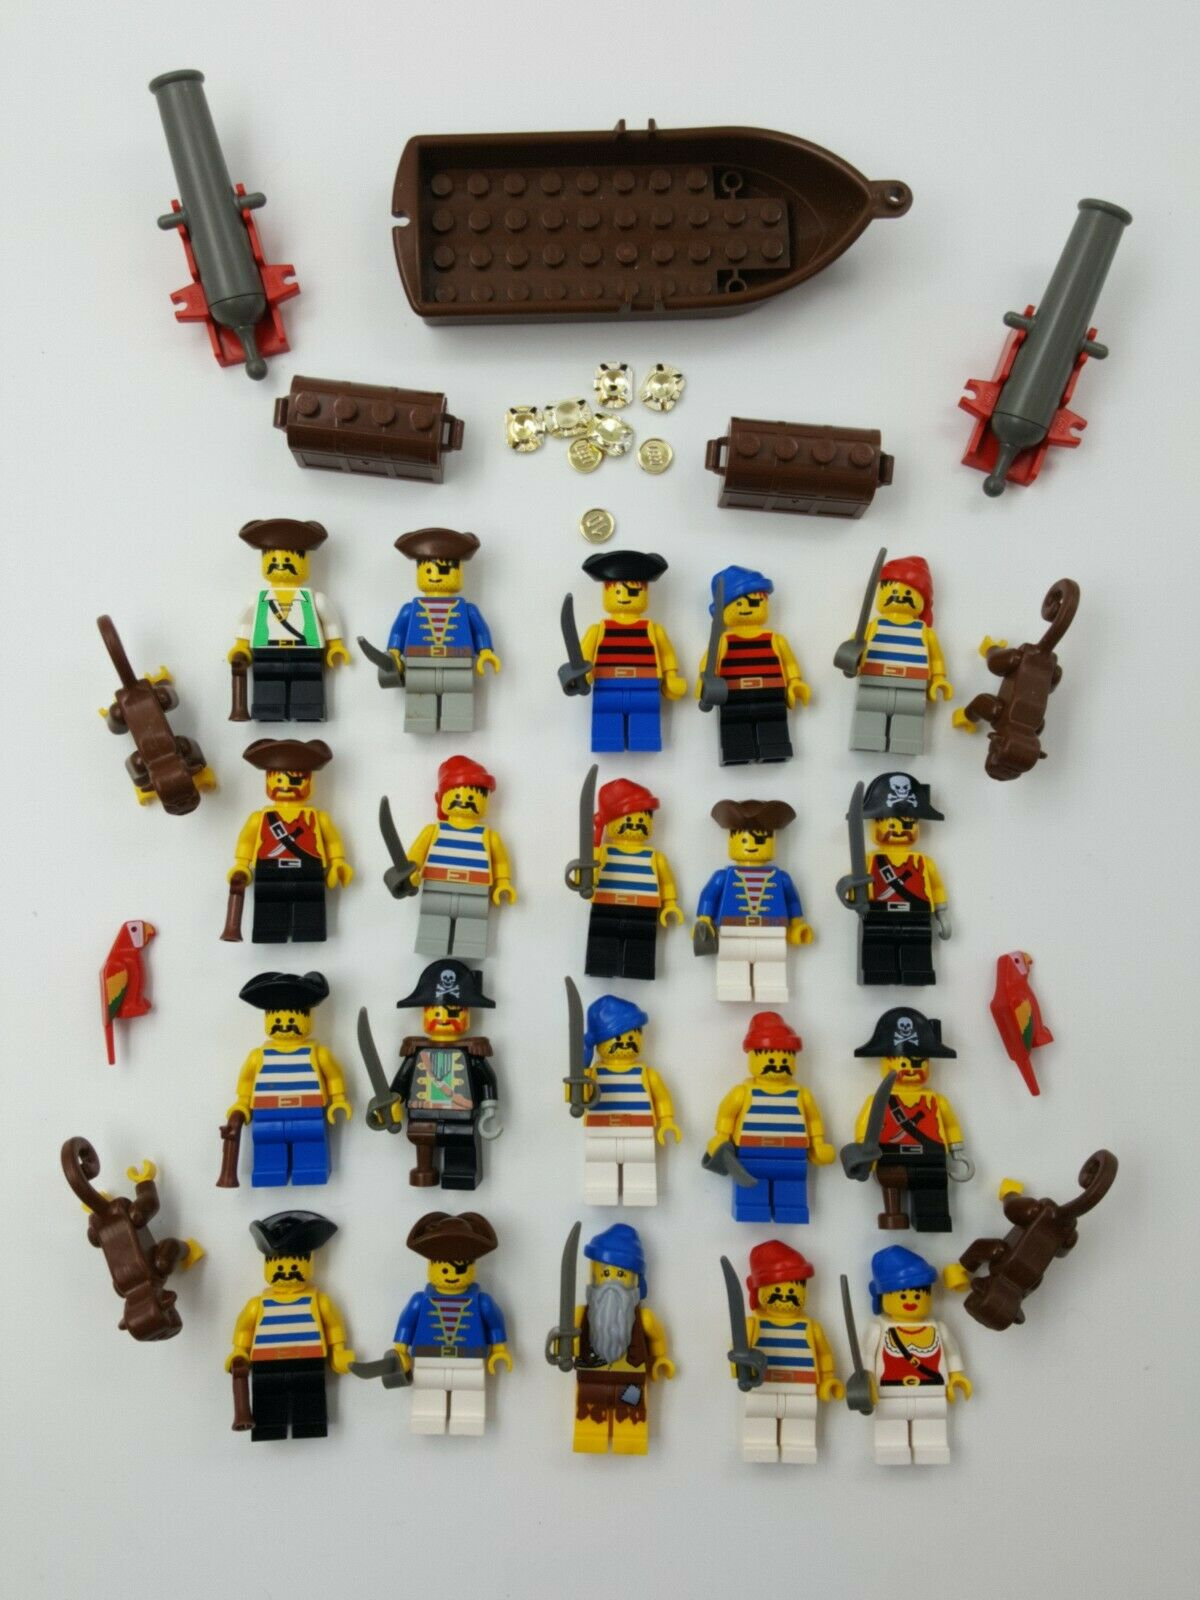 Lego Mini Figure Minifig Pirate Captain Monkey Parrot Cannon Accessories Weapons